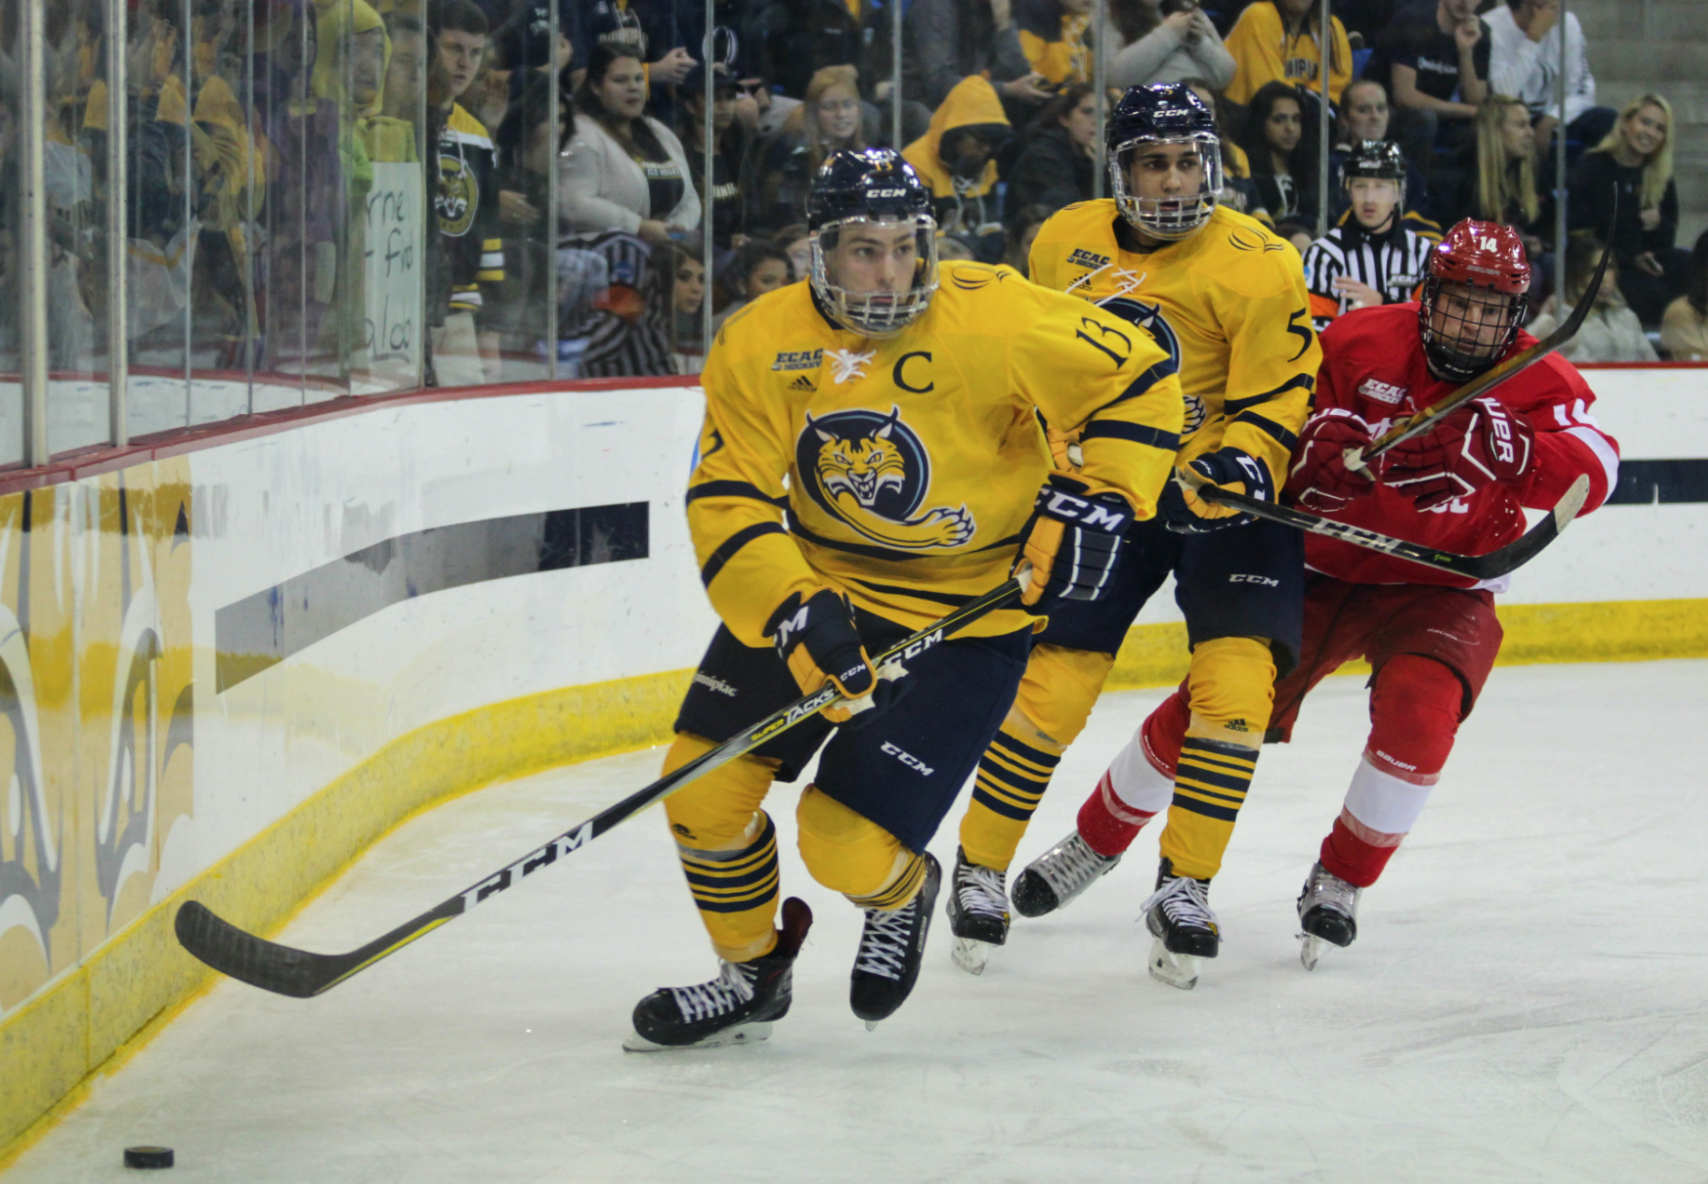 Quinnipiac men's ice hockey's season ends at Cornell